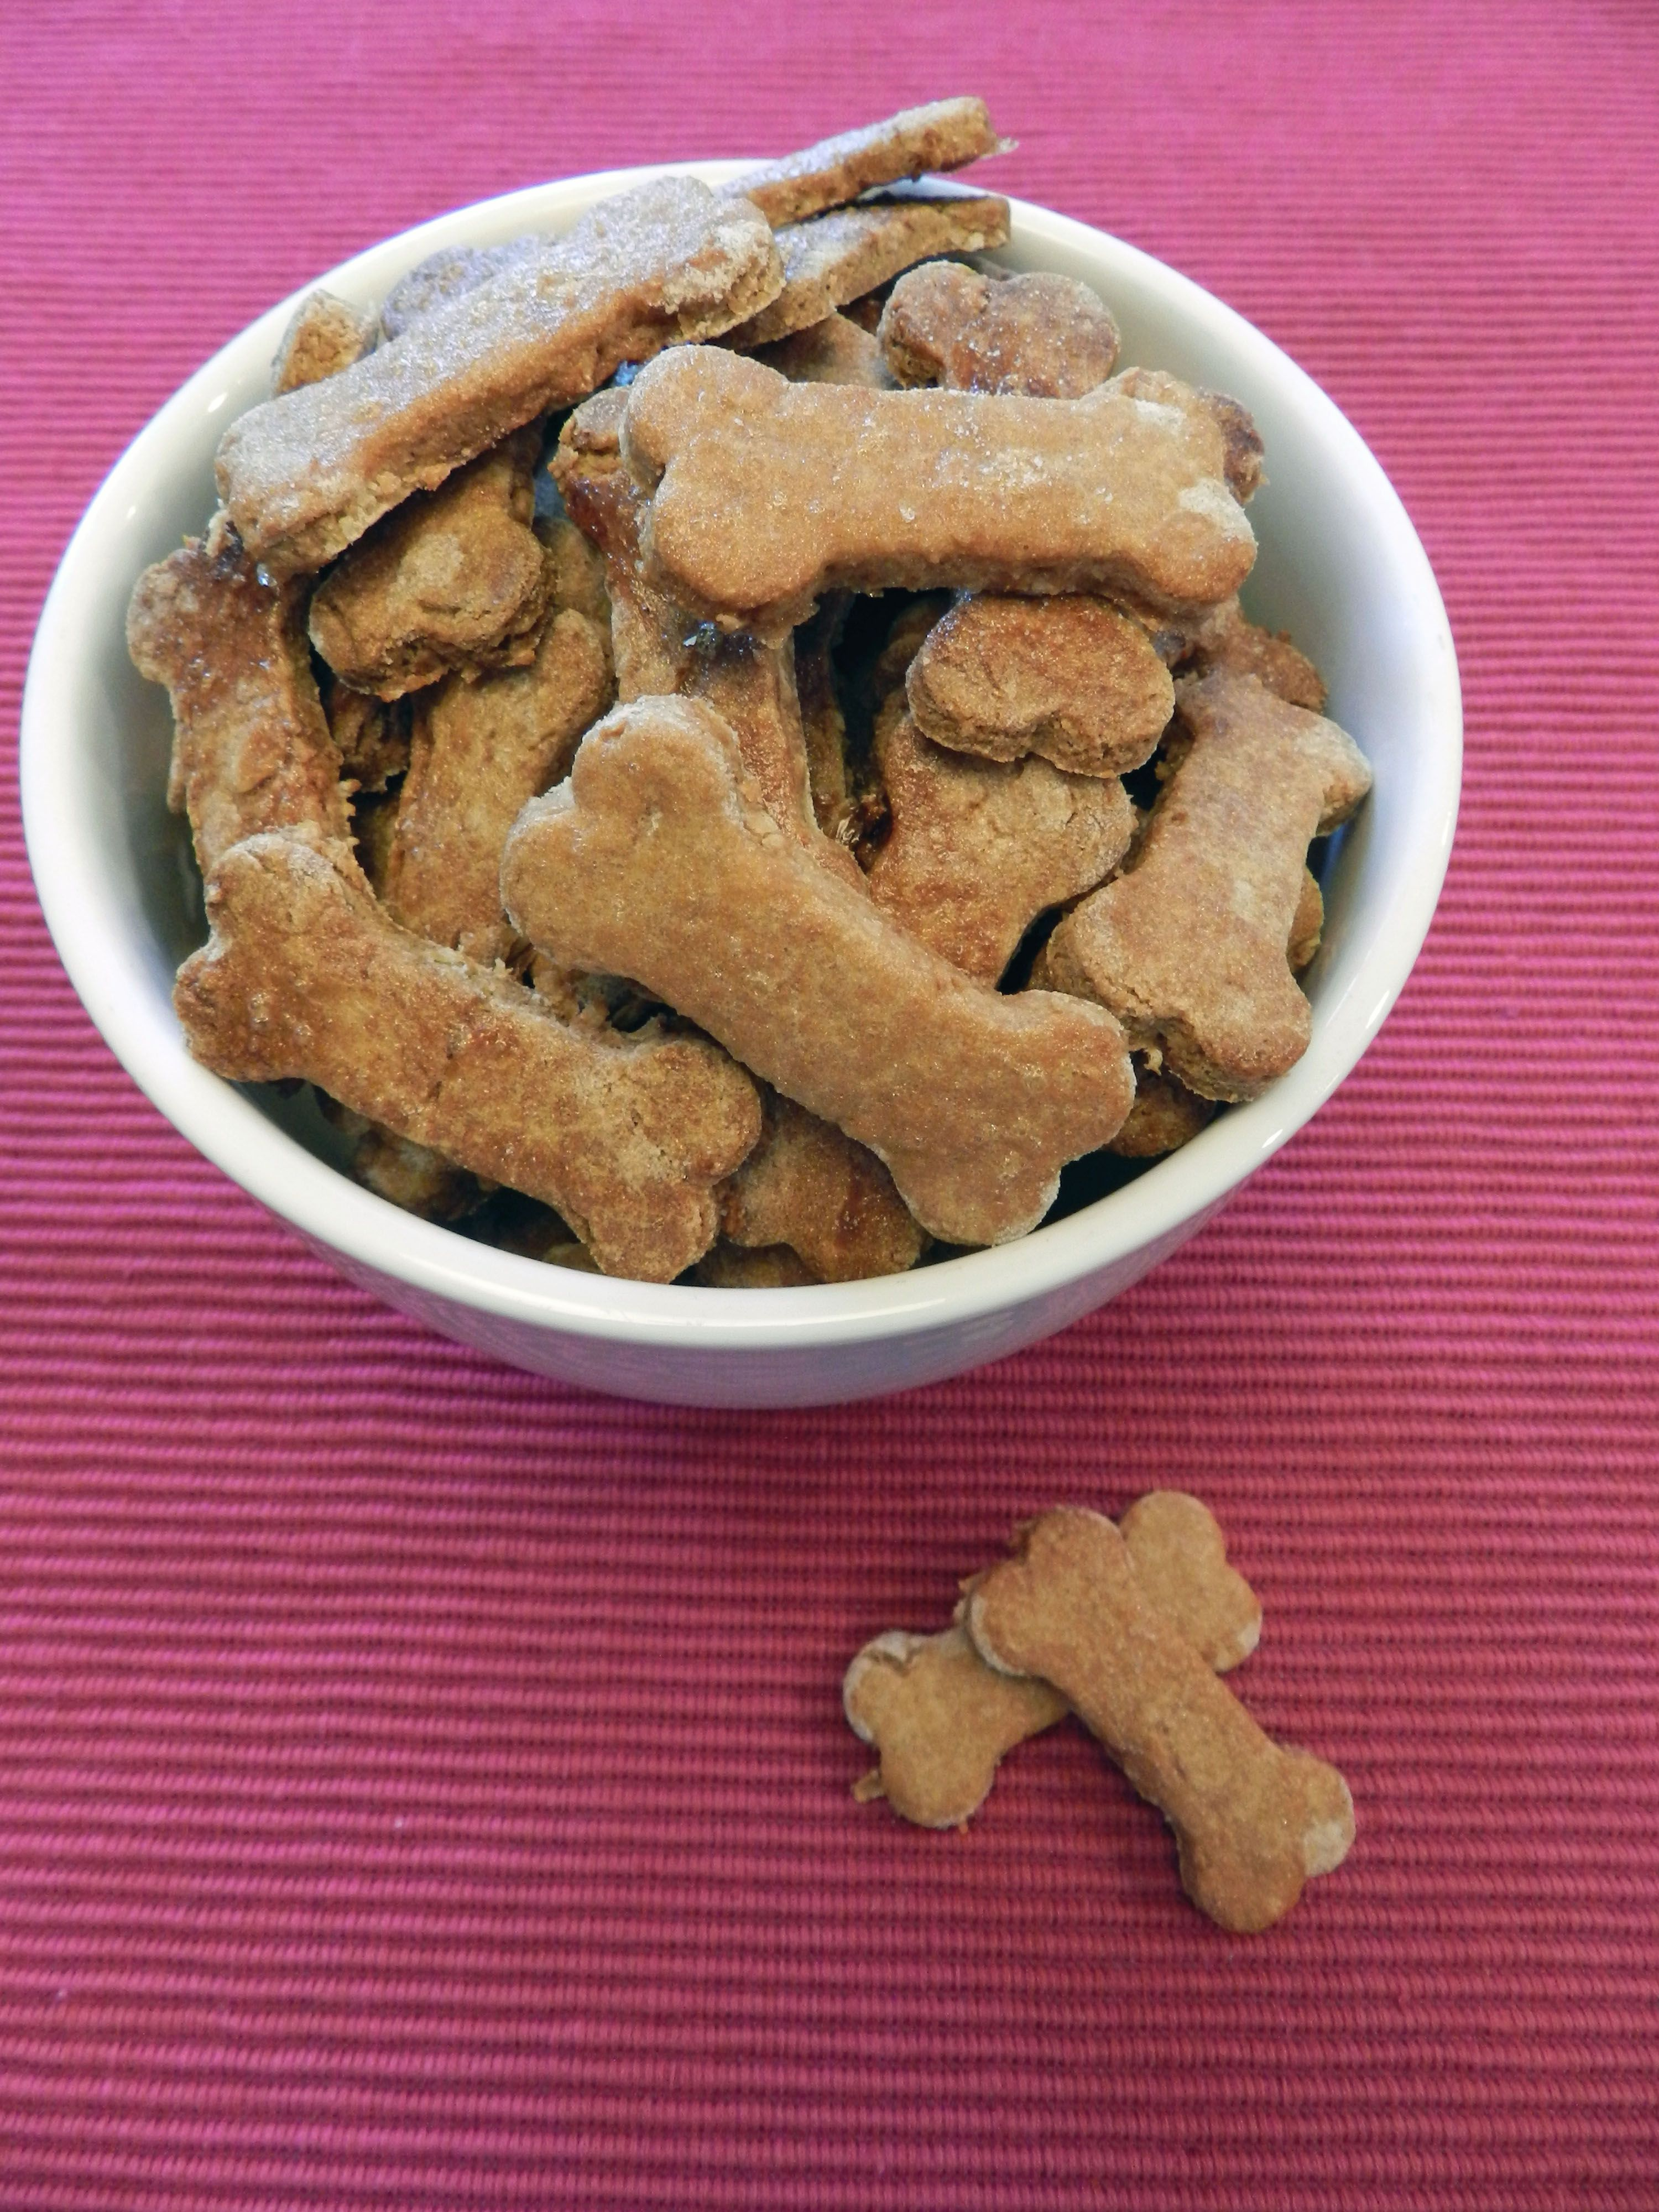 Peanut Butter And Banana Dog Biscuits Recipe Dog Food Recipes